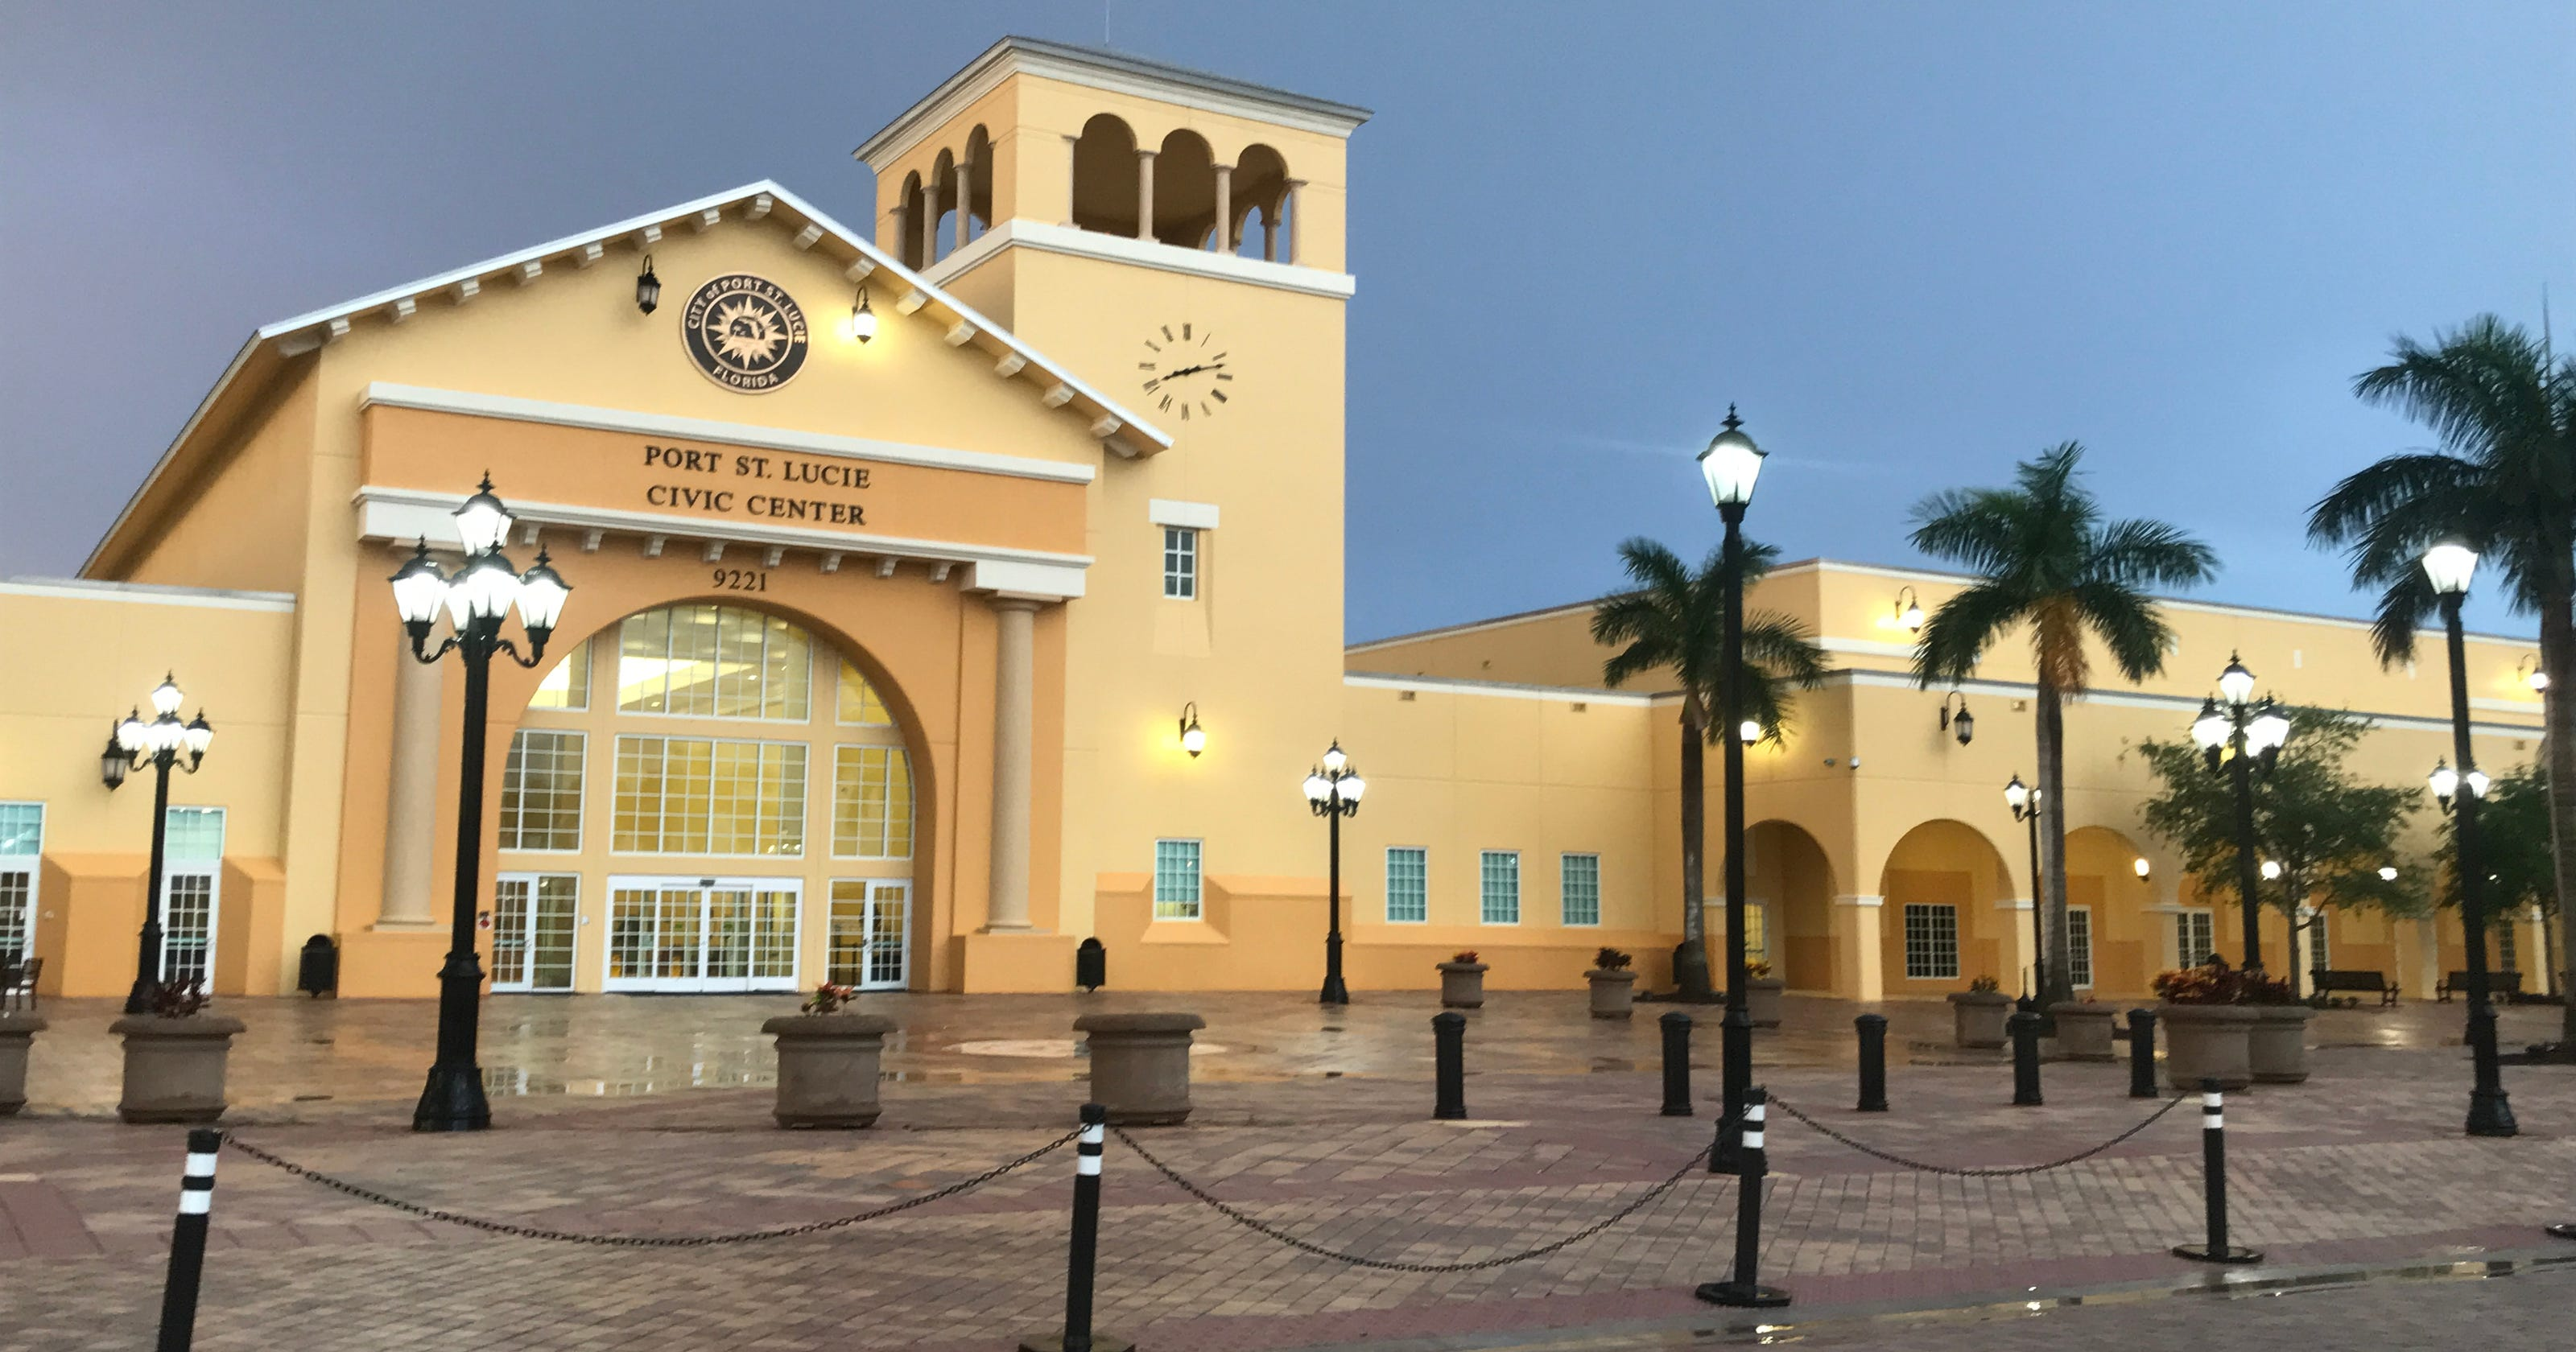 Water Intrusion Damaged Port St Lucie Civic Center Building